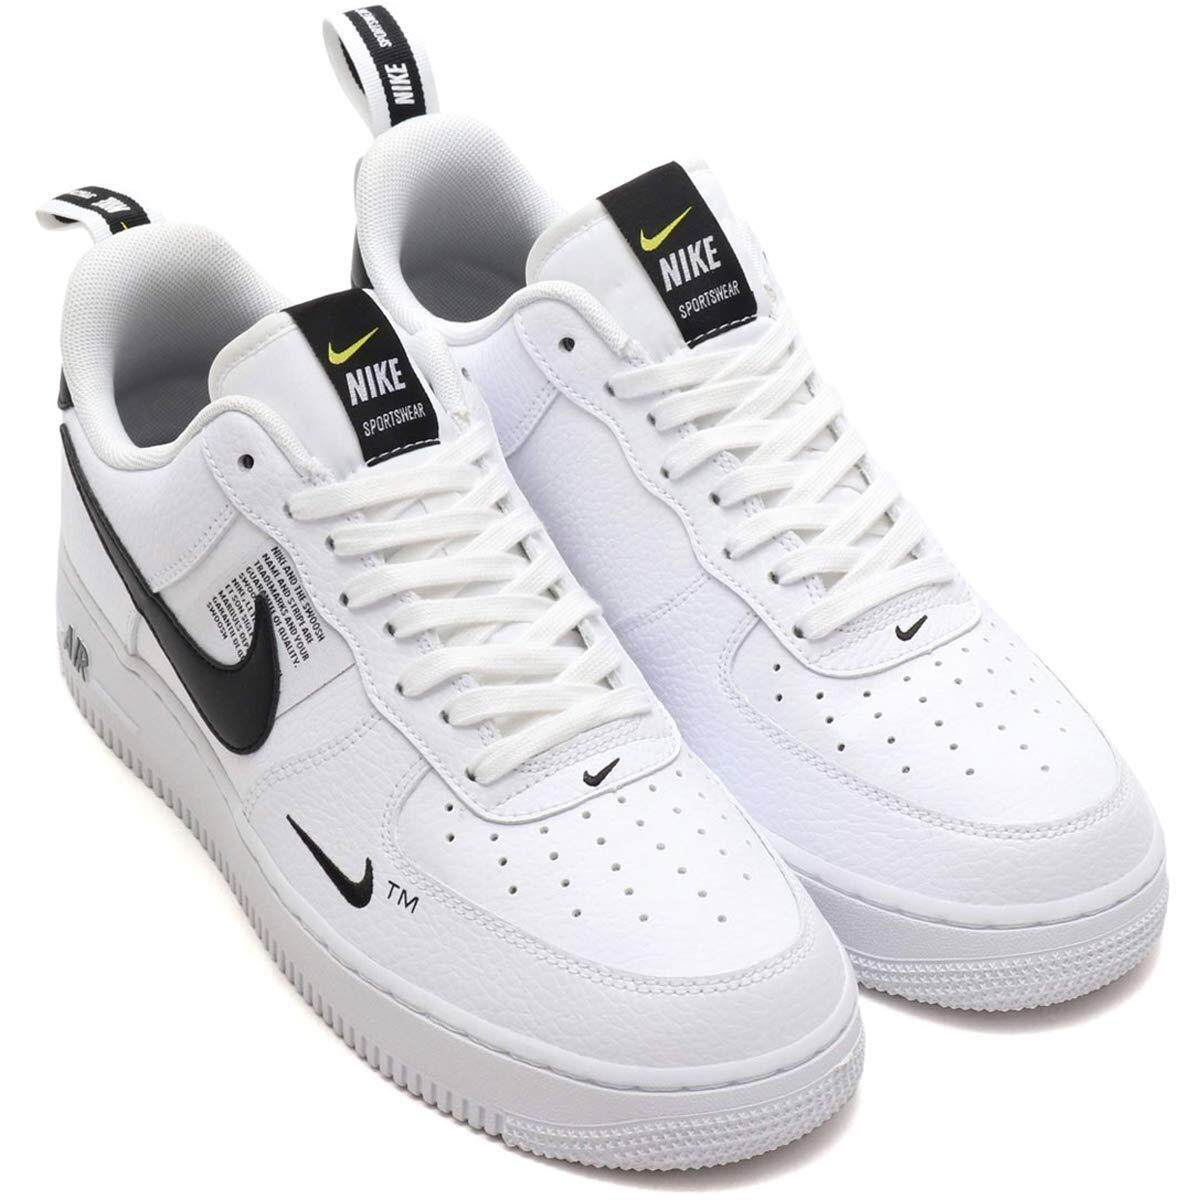 low priced cc8bf ec6b7 Product details of Classic casual shoes white black low N i k e air force  one  AIR FORCE 1 07 LV8 UTILITY  lace AJ7747-100 overseas direct mail DC0100